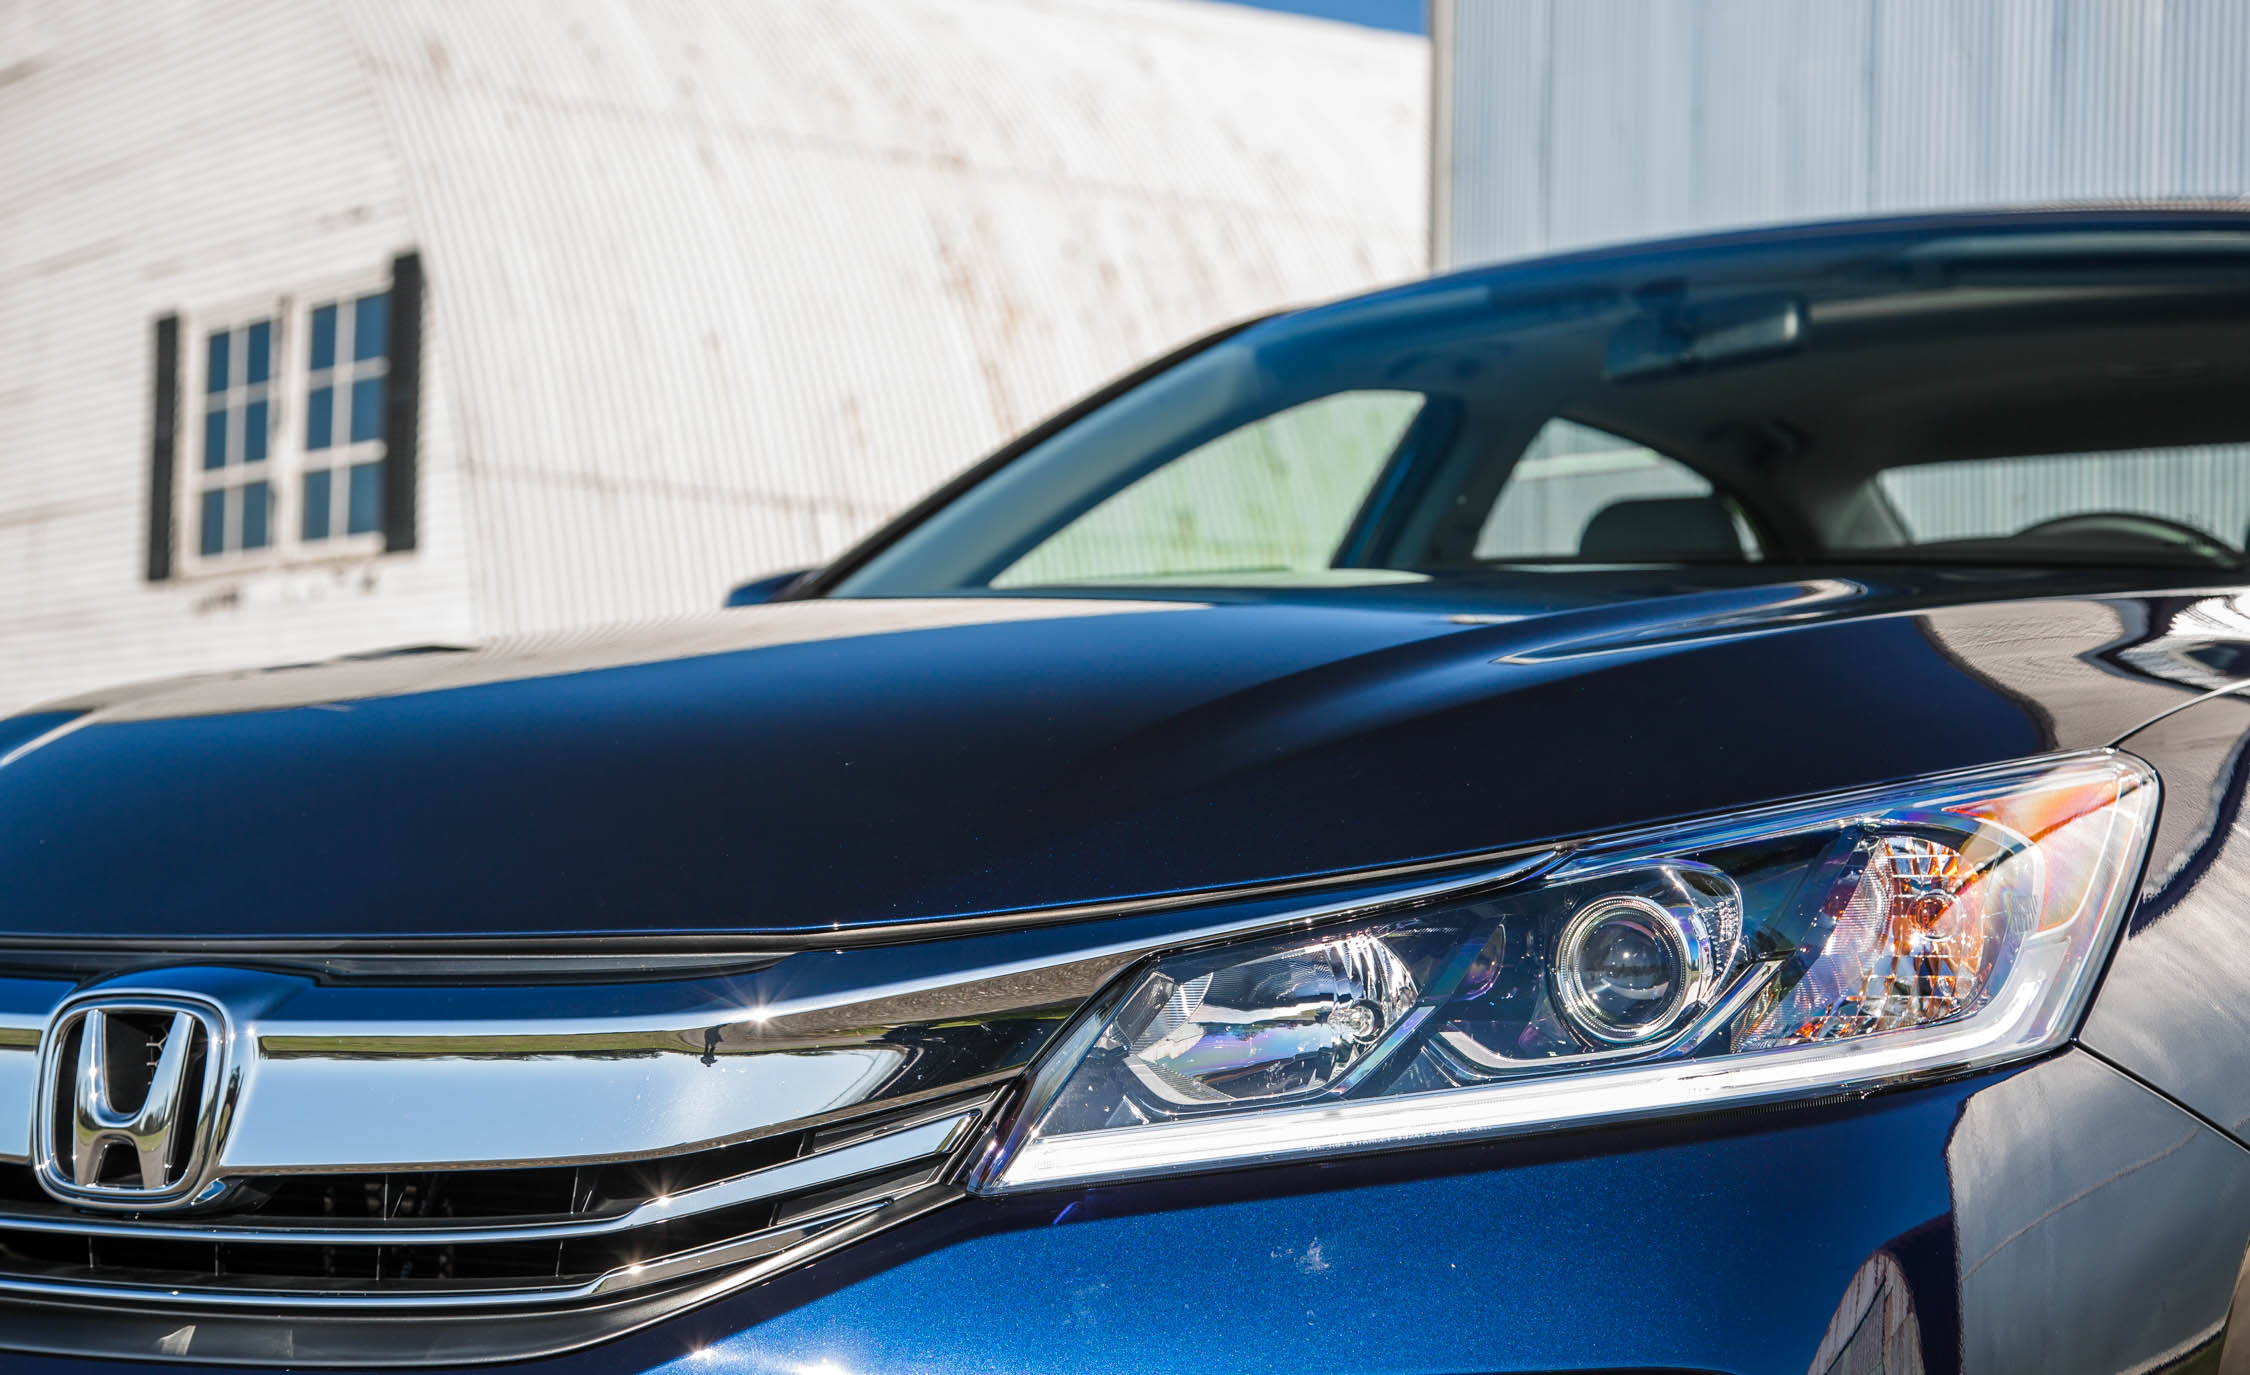 2016 Honda Accord EX Exterior Headlight